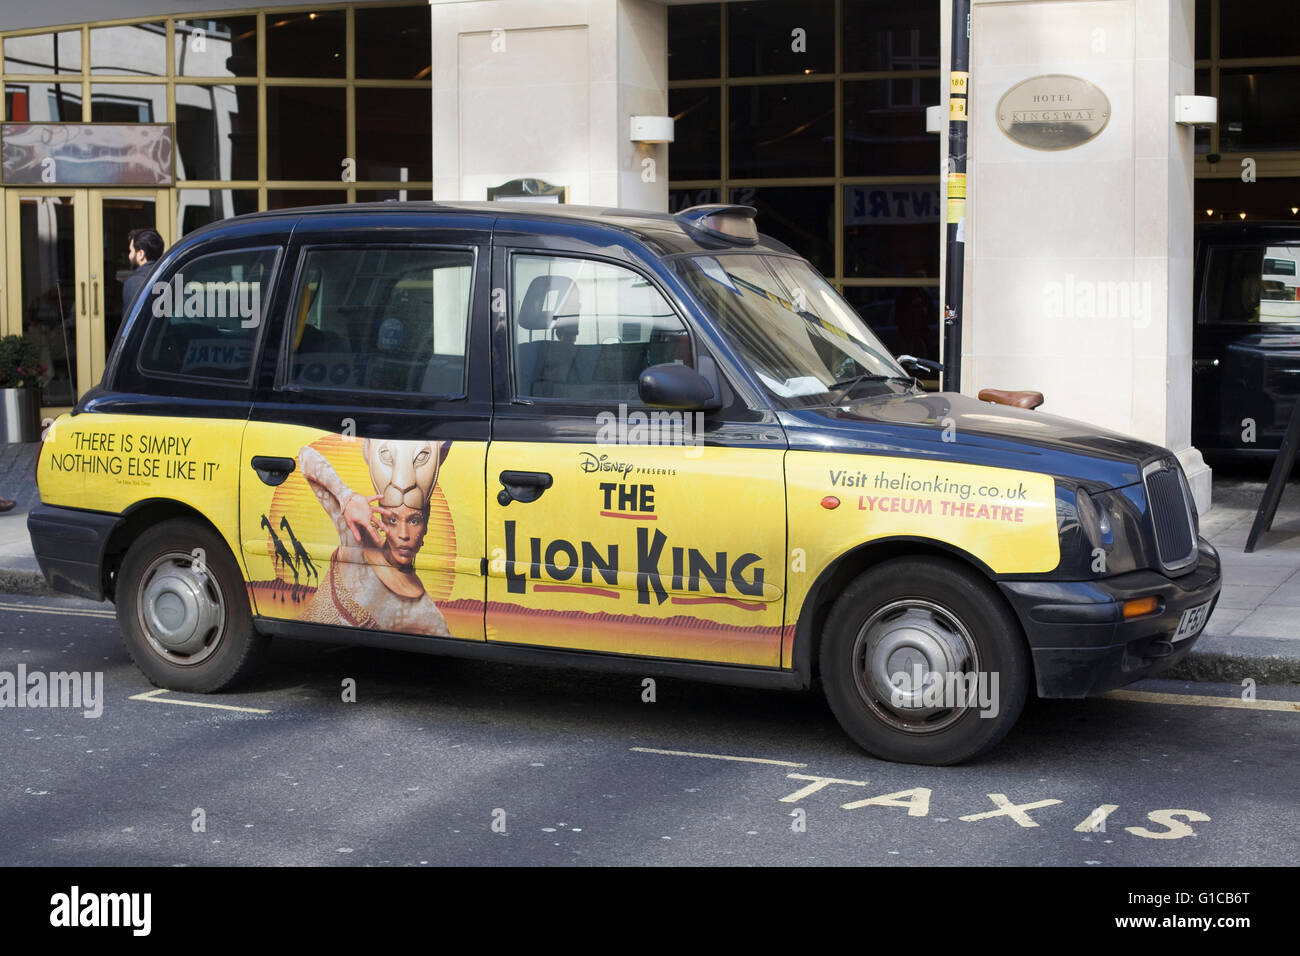 A famous London Black cab advertising The Lion King Stock Photo